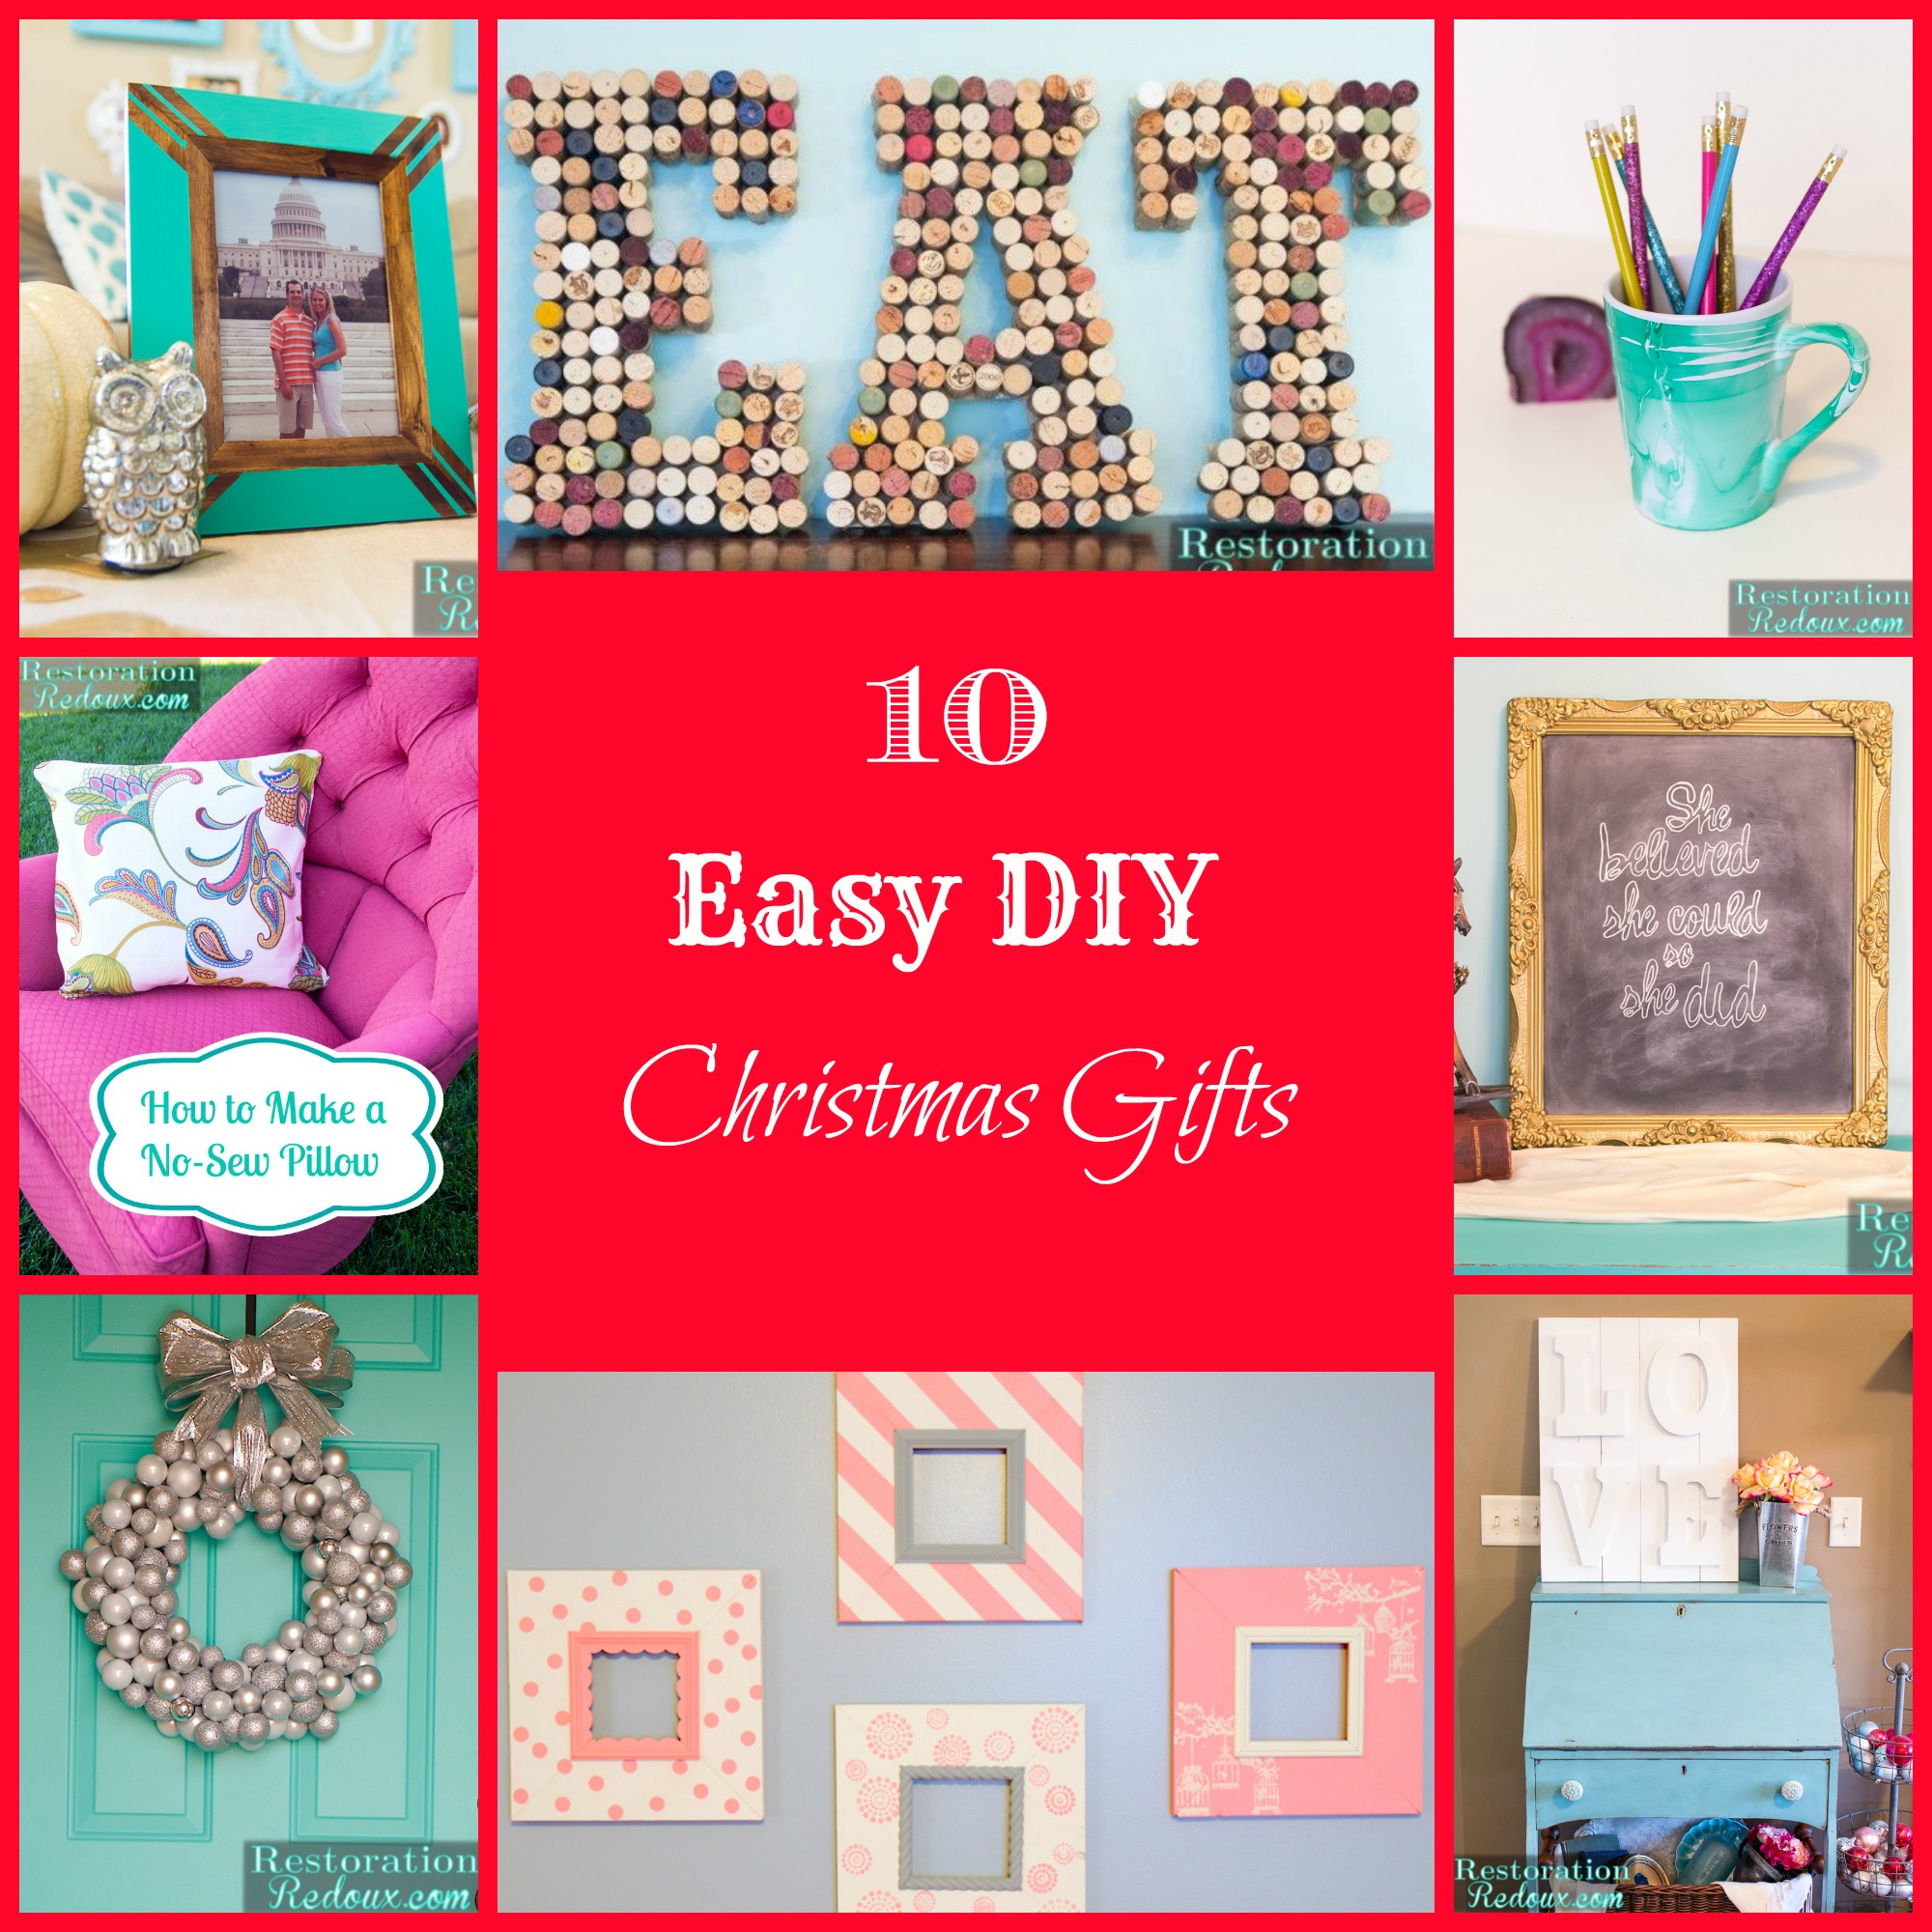 10 easy diy christmas gifts daily dose of style - Easy Diy Christmas Gifts